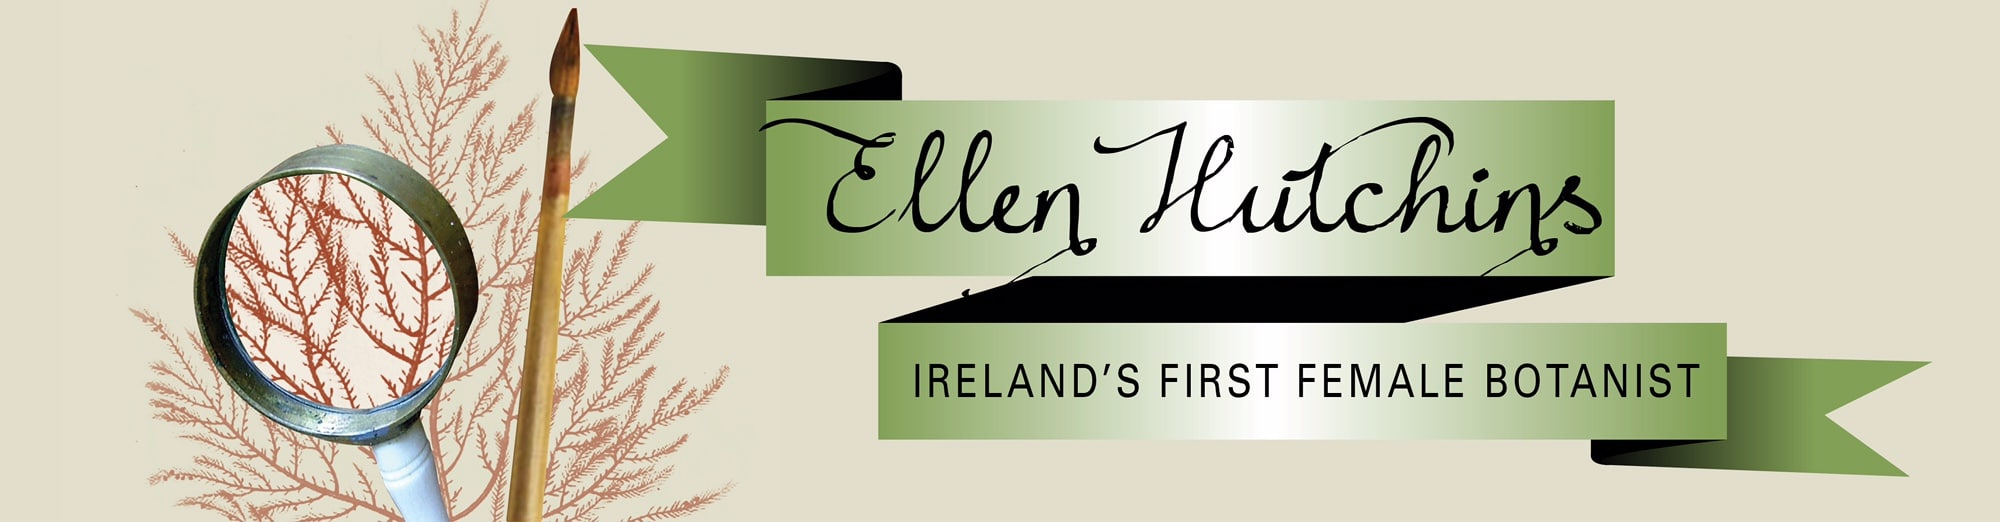 Ellen Hutchins: Ireland's First Female Botanist